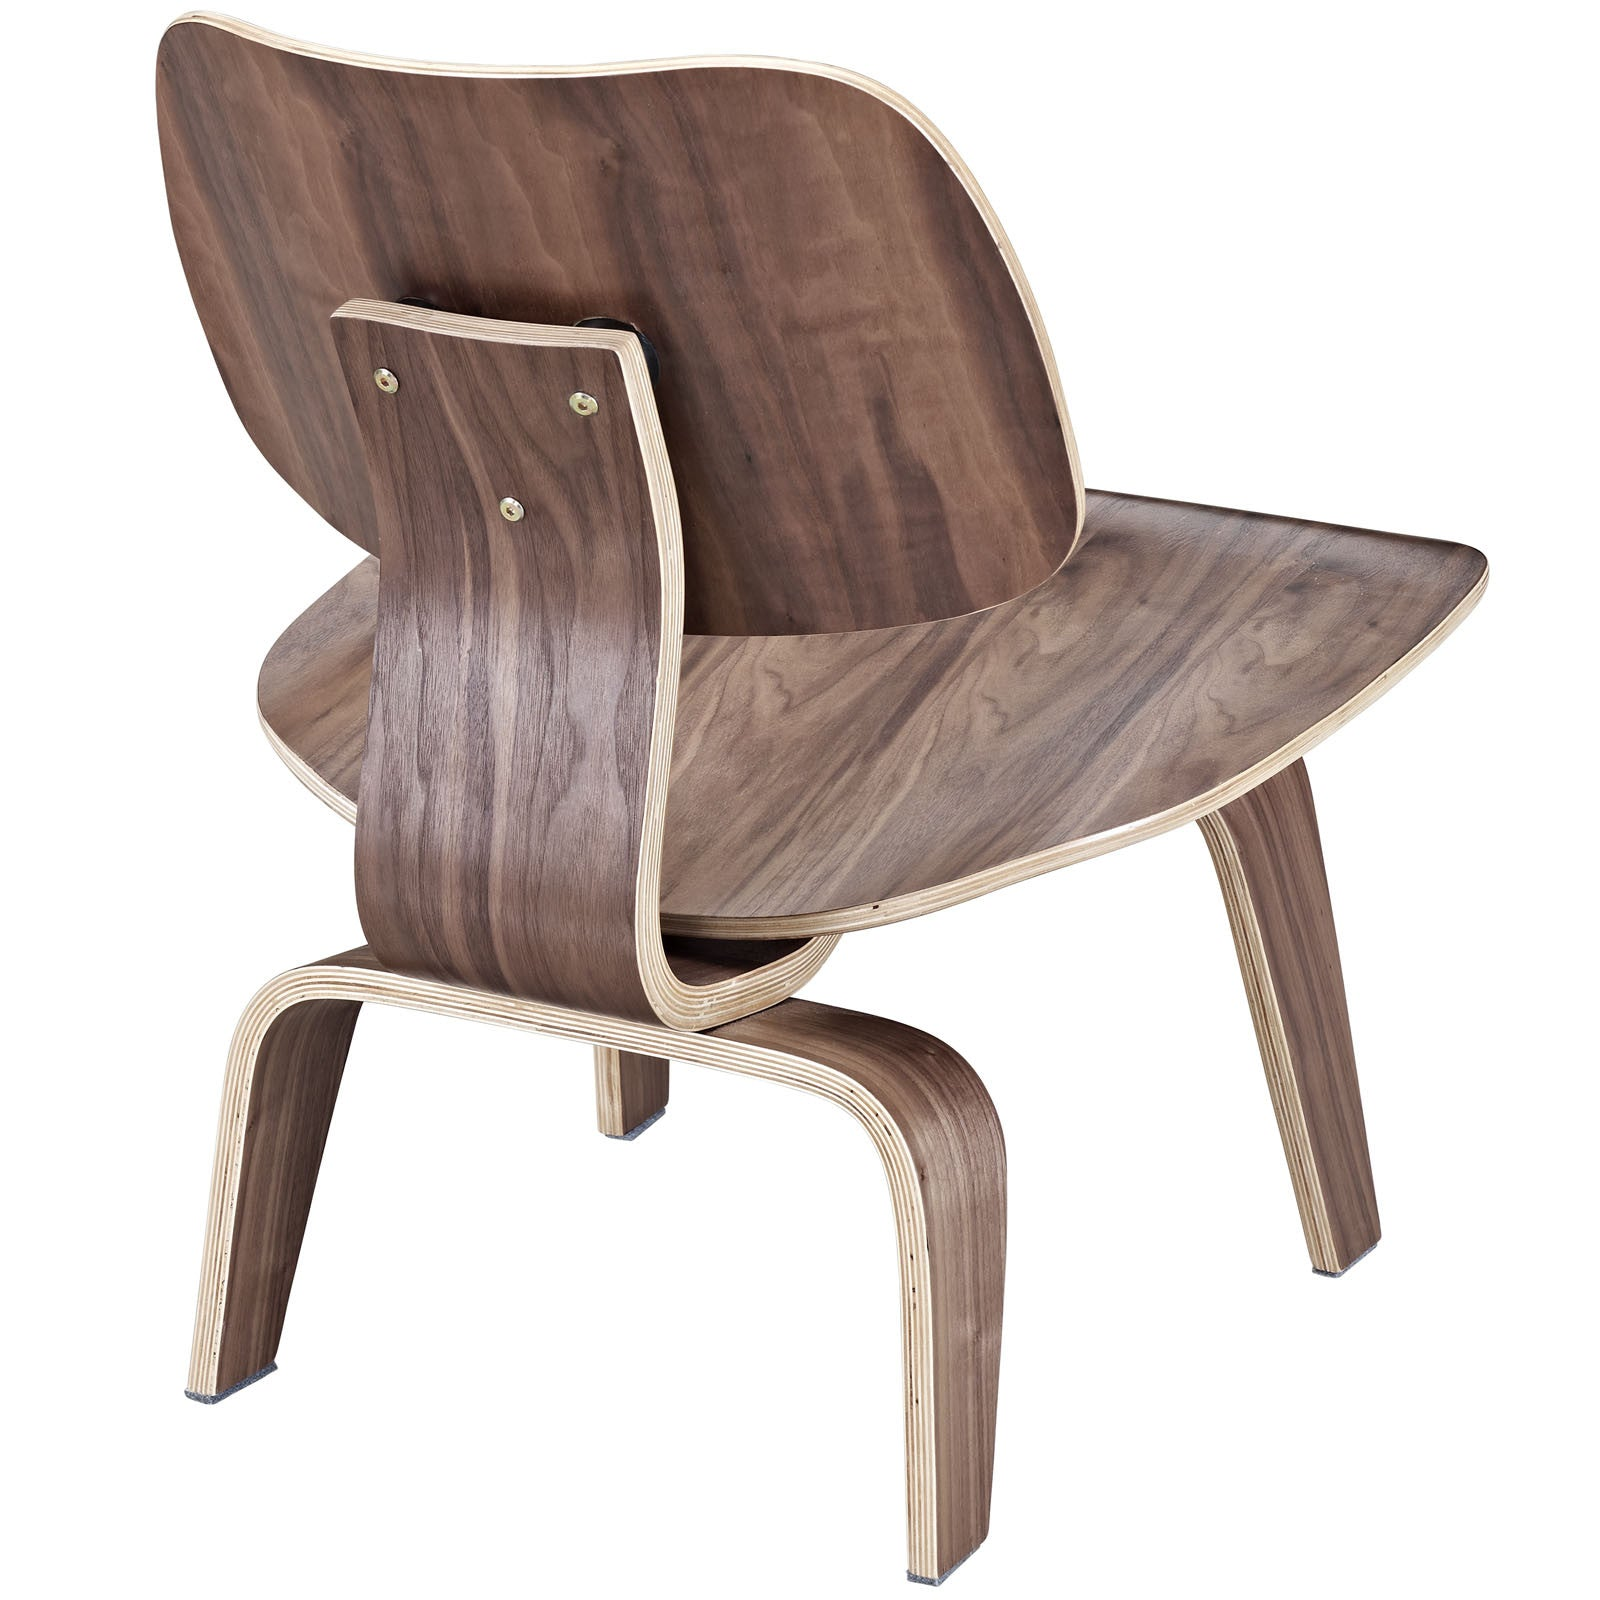 ... Eames LCW Lounge Chair Reproduction   The Modern Source   3 ...